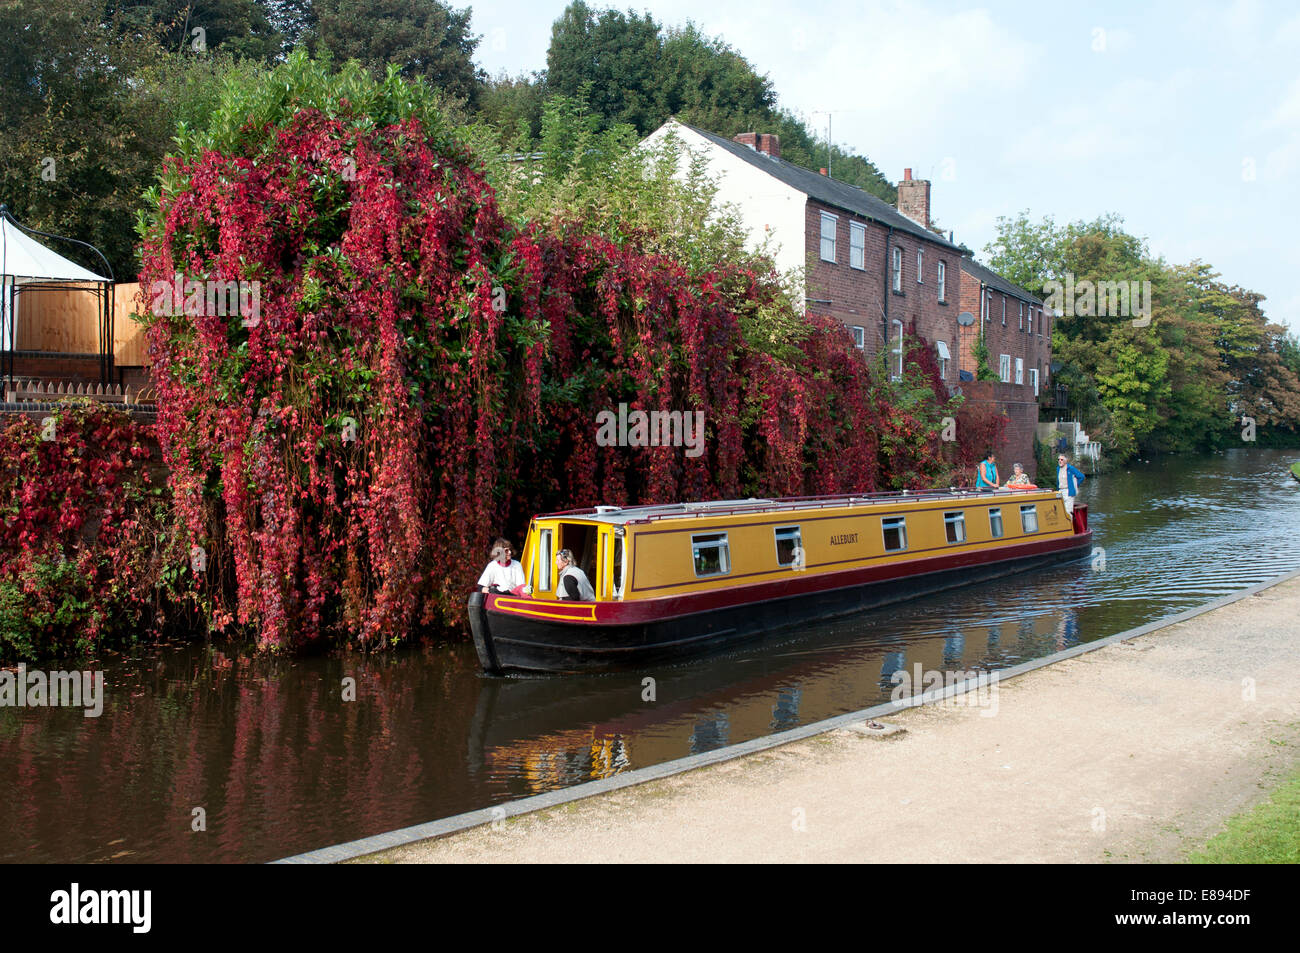 Narrowboat on the Staffordshire and Worcestershire Canal in autumn, Kidderminster, Worcestershire, UK Stock Photo